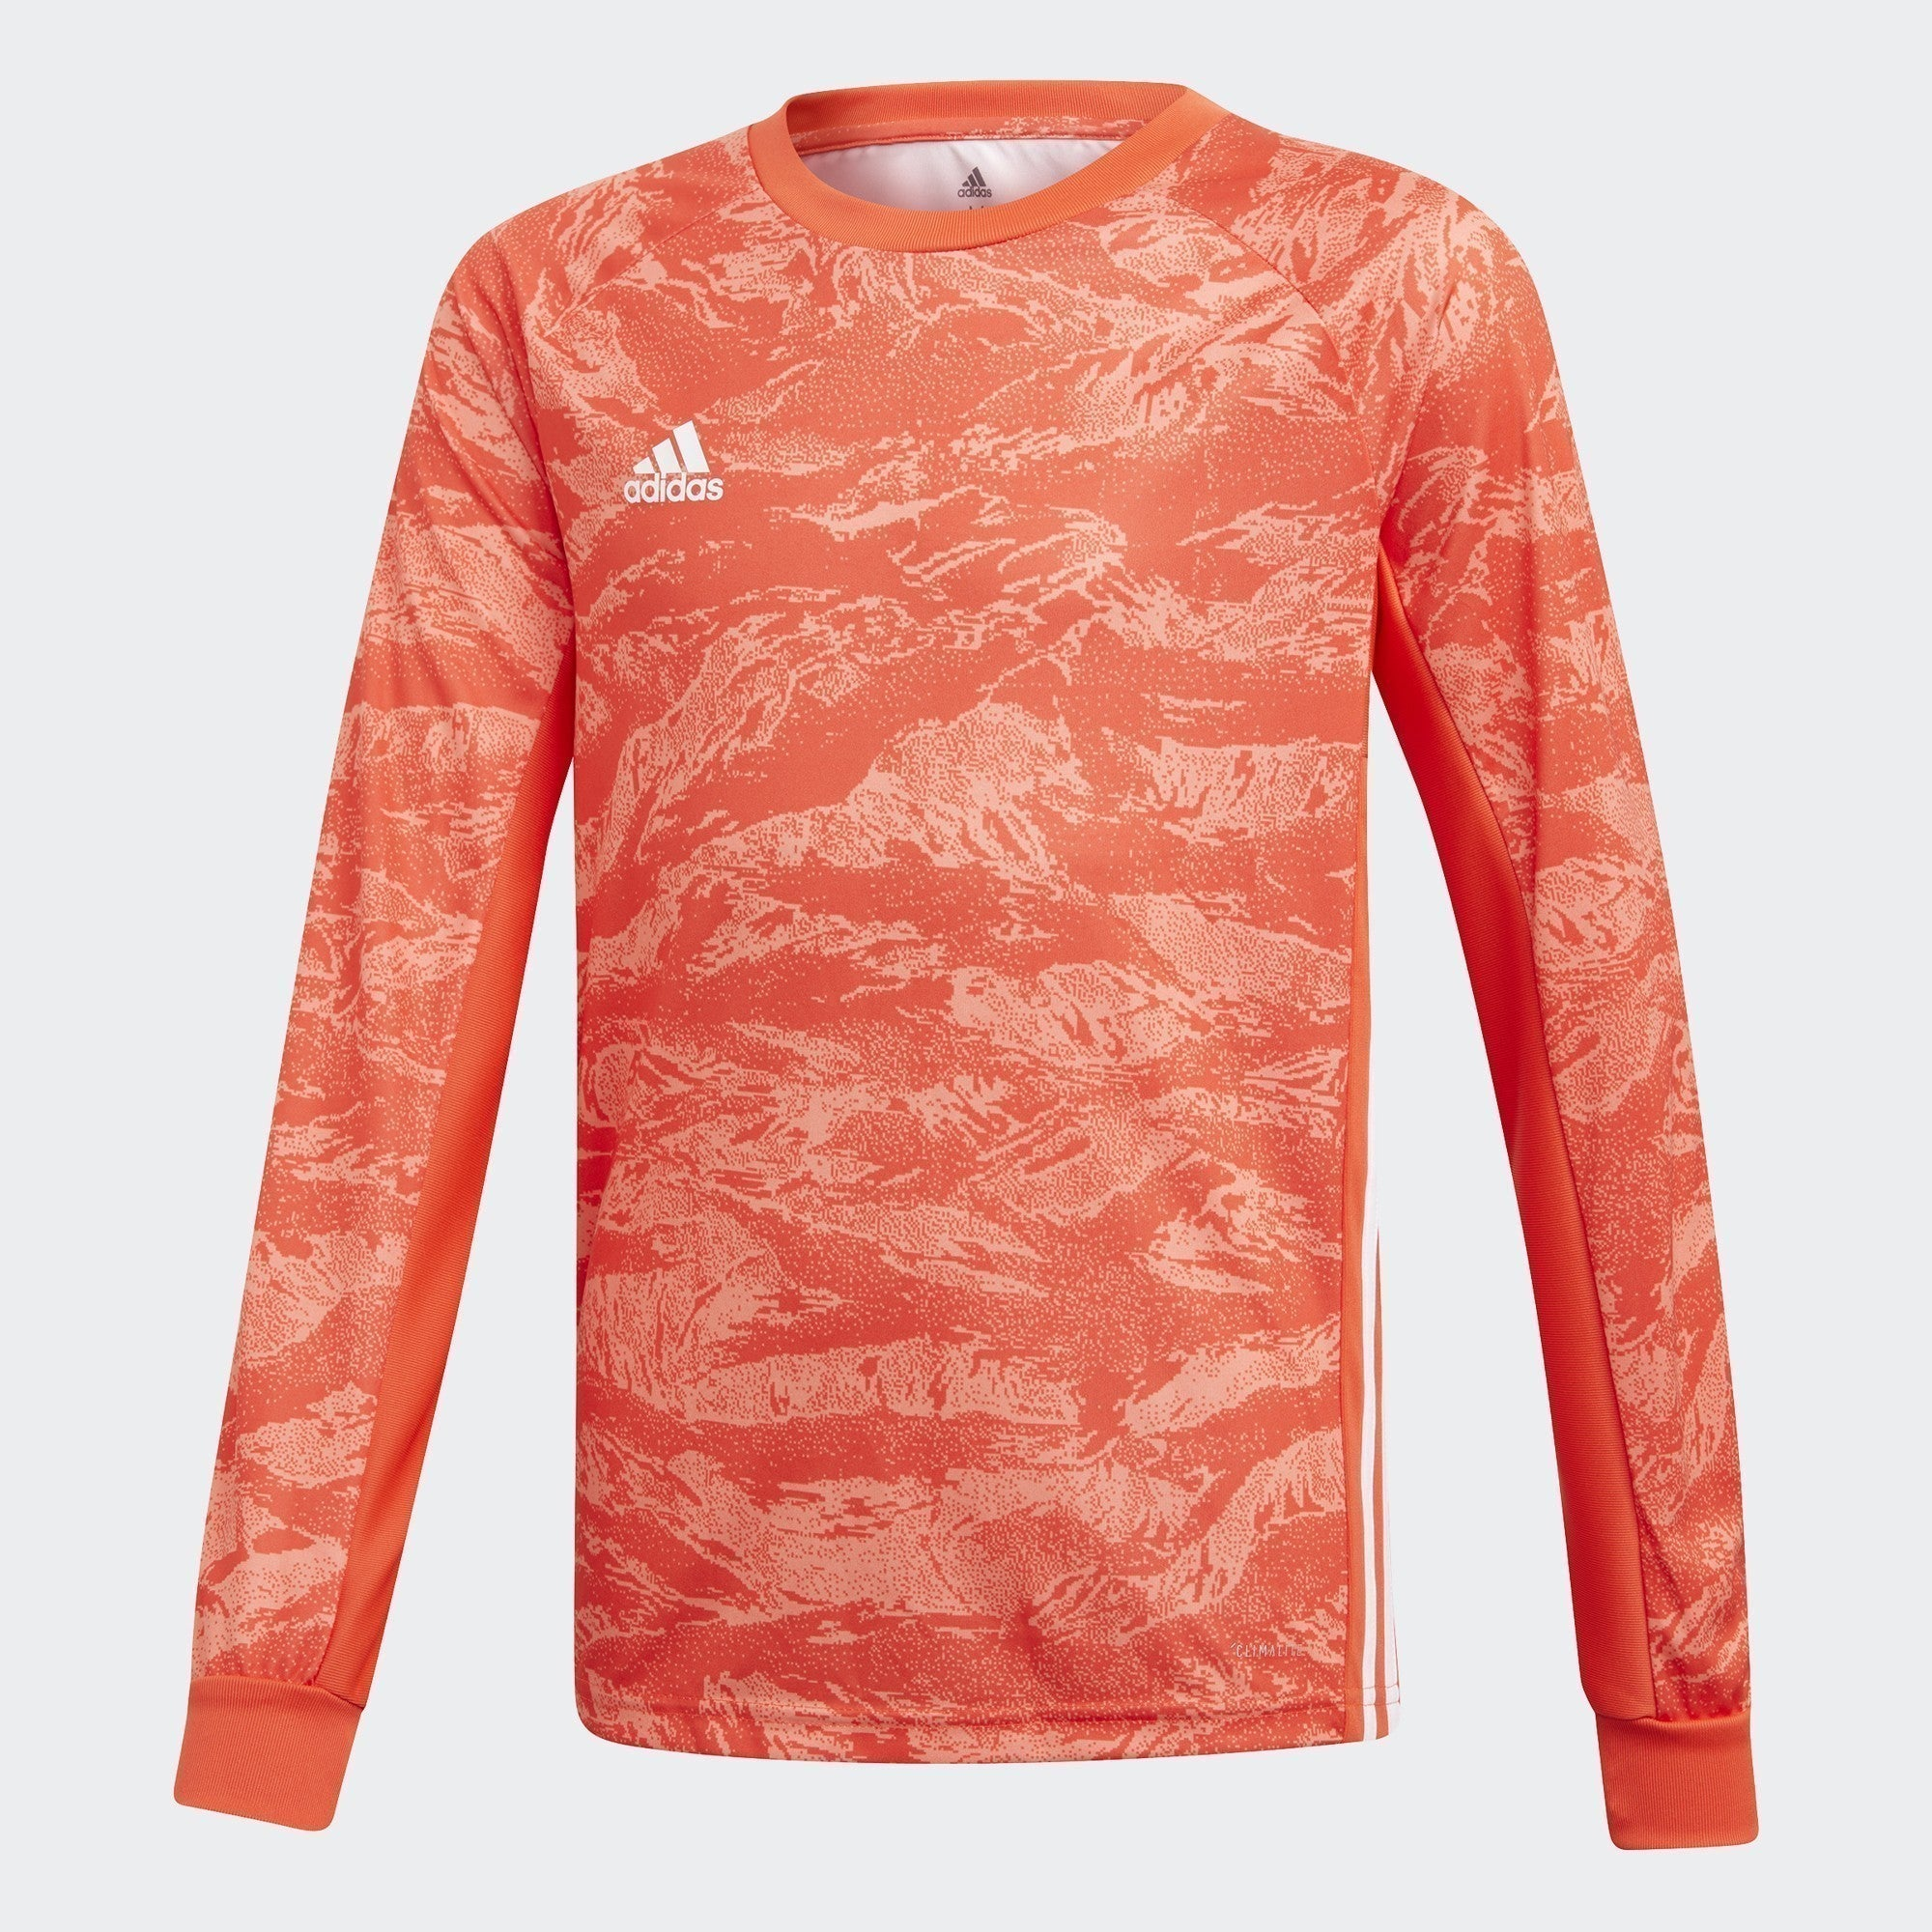 Kid's Adipro 19 Goalkeeper L/S Jersey - Semi Solar Red